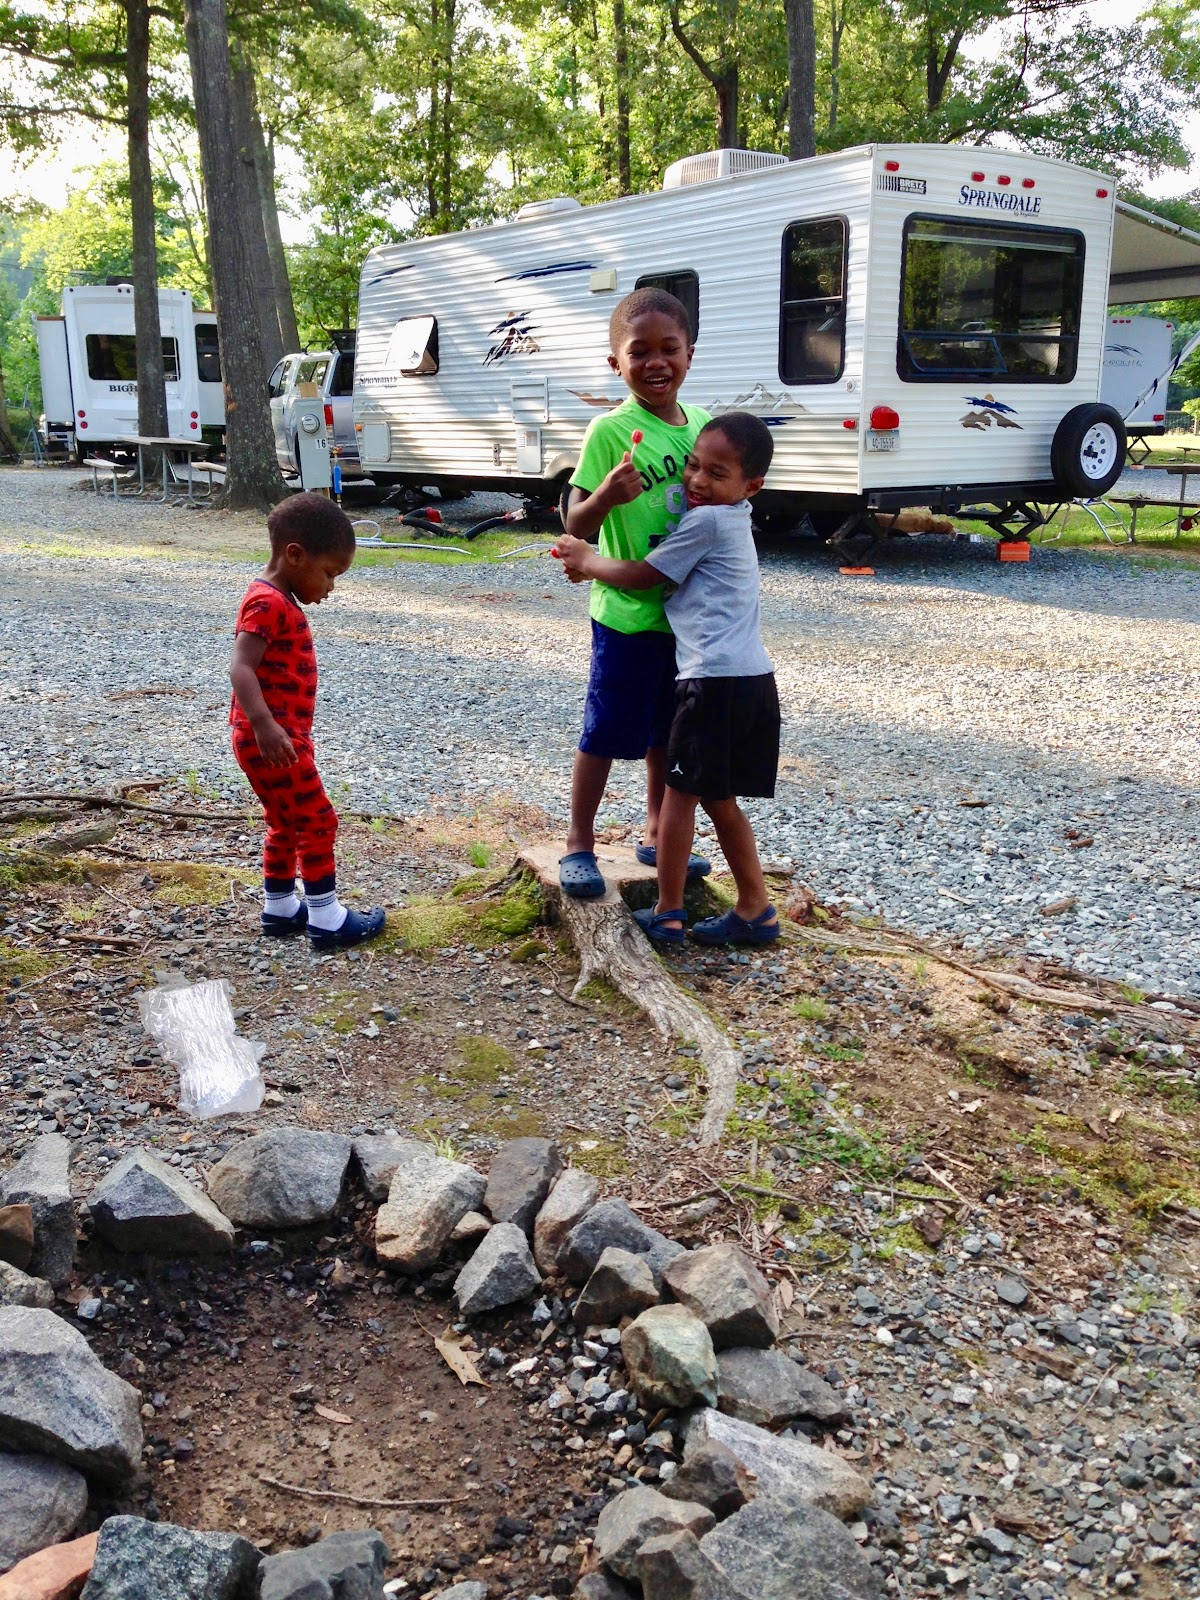 Three young boys laugh and hug at campground with travel trailers in the background